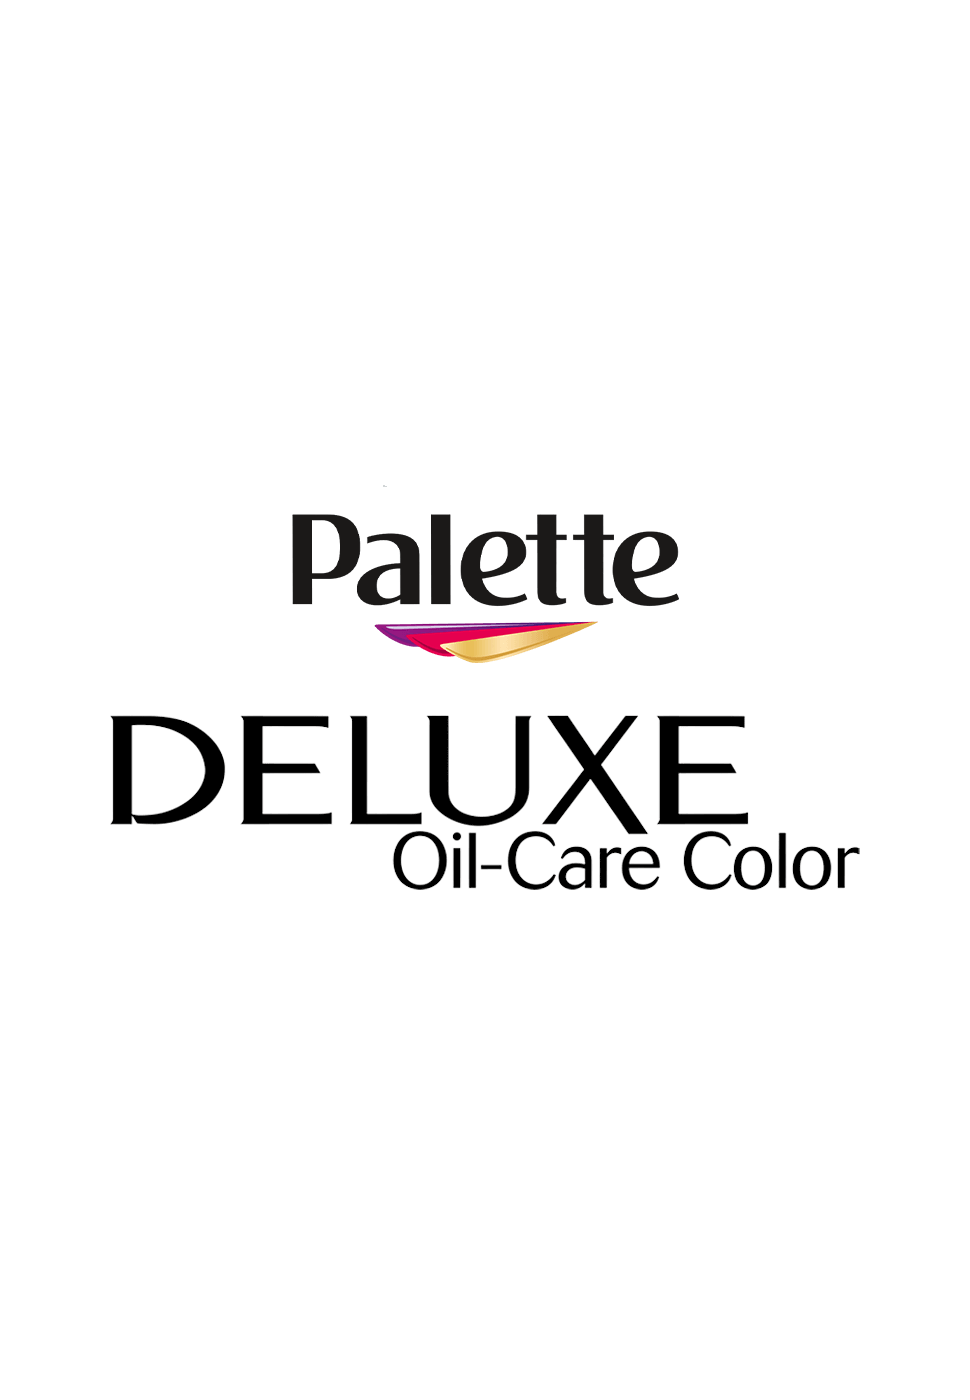 palette_com_deluxe_baseline_home_logos_970x1400